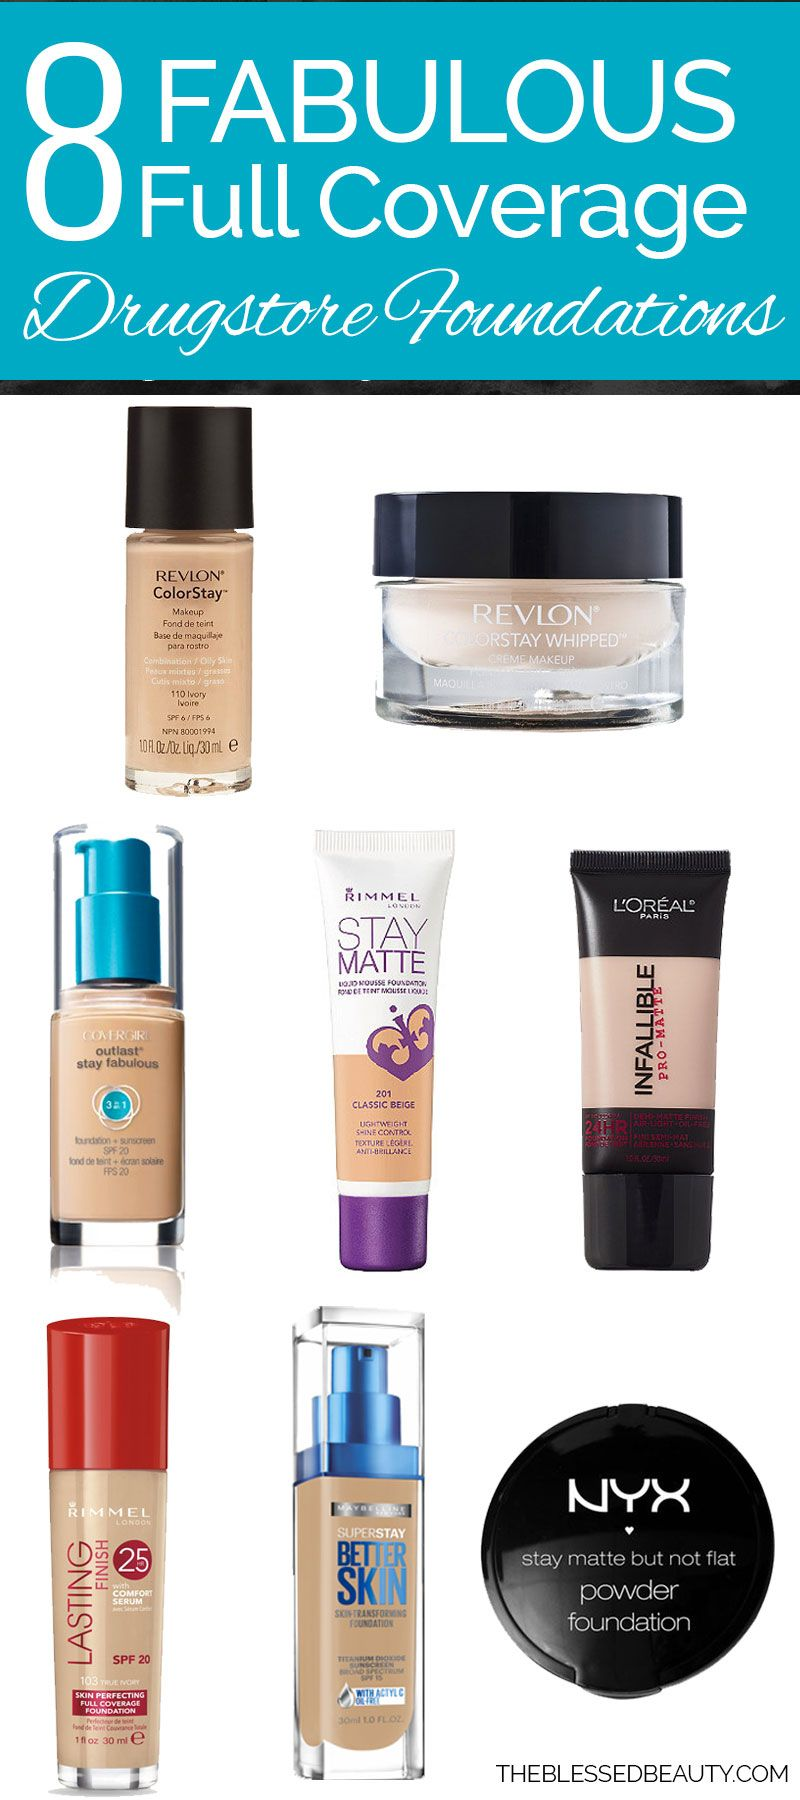 full coverage drugstore foundations